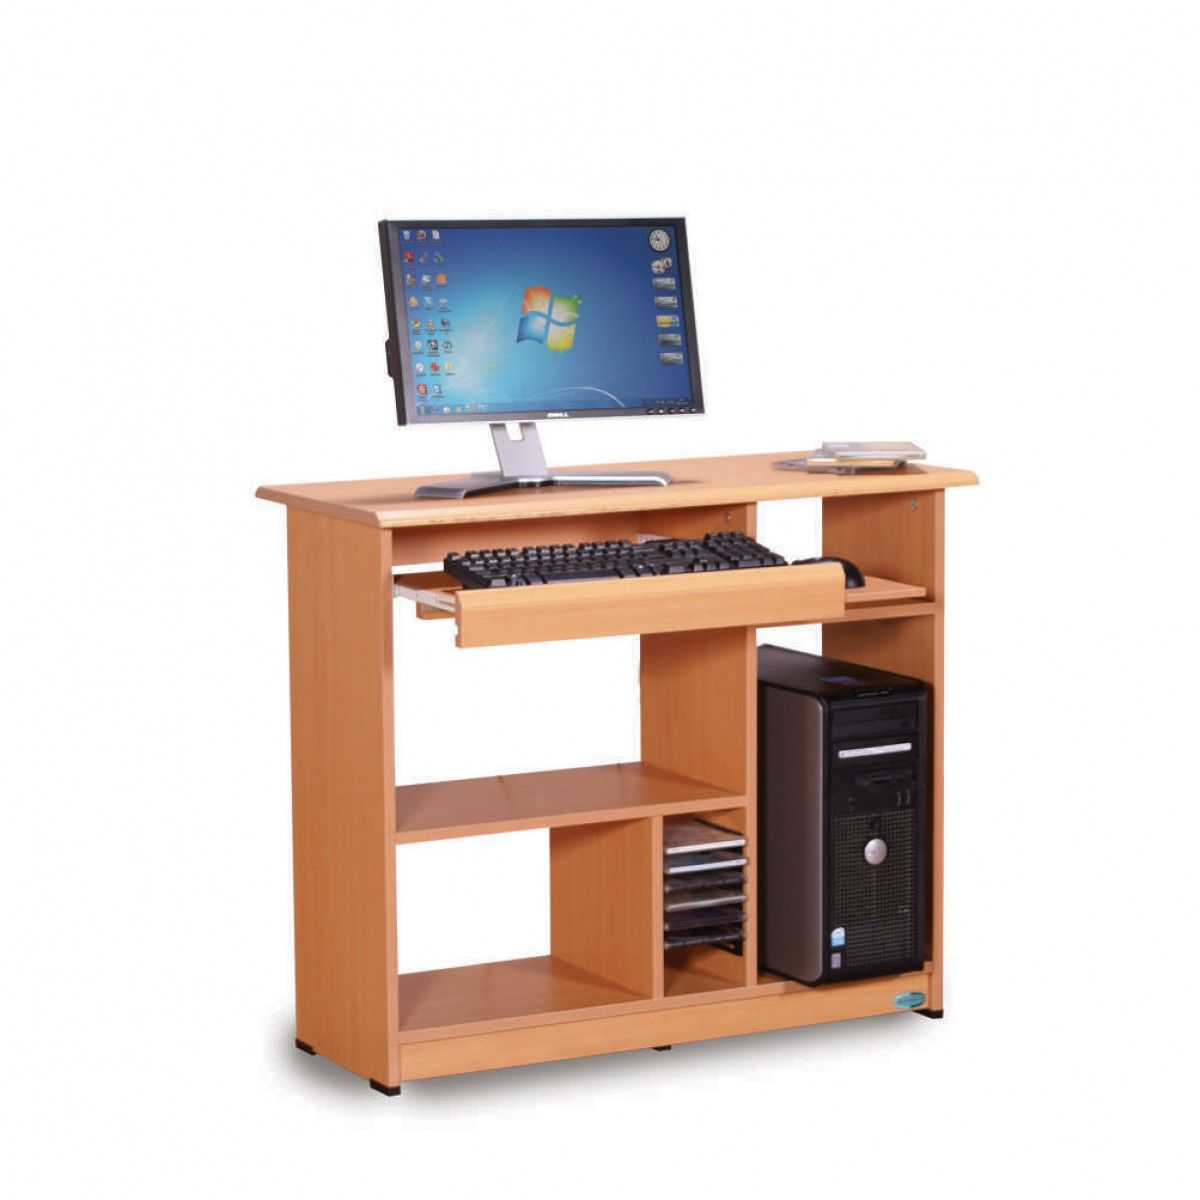 Cool computer table low price | Furniture, Home office ...